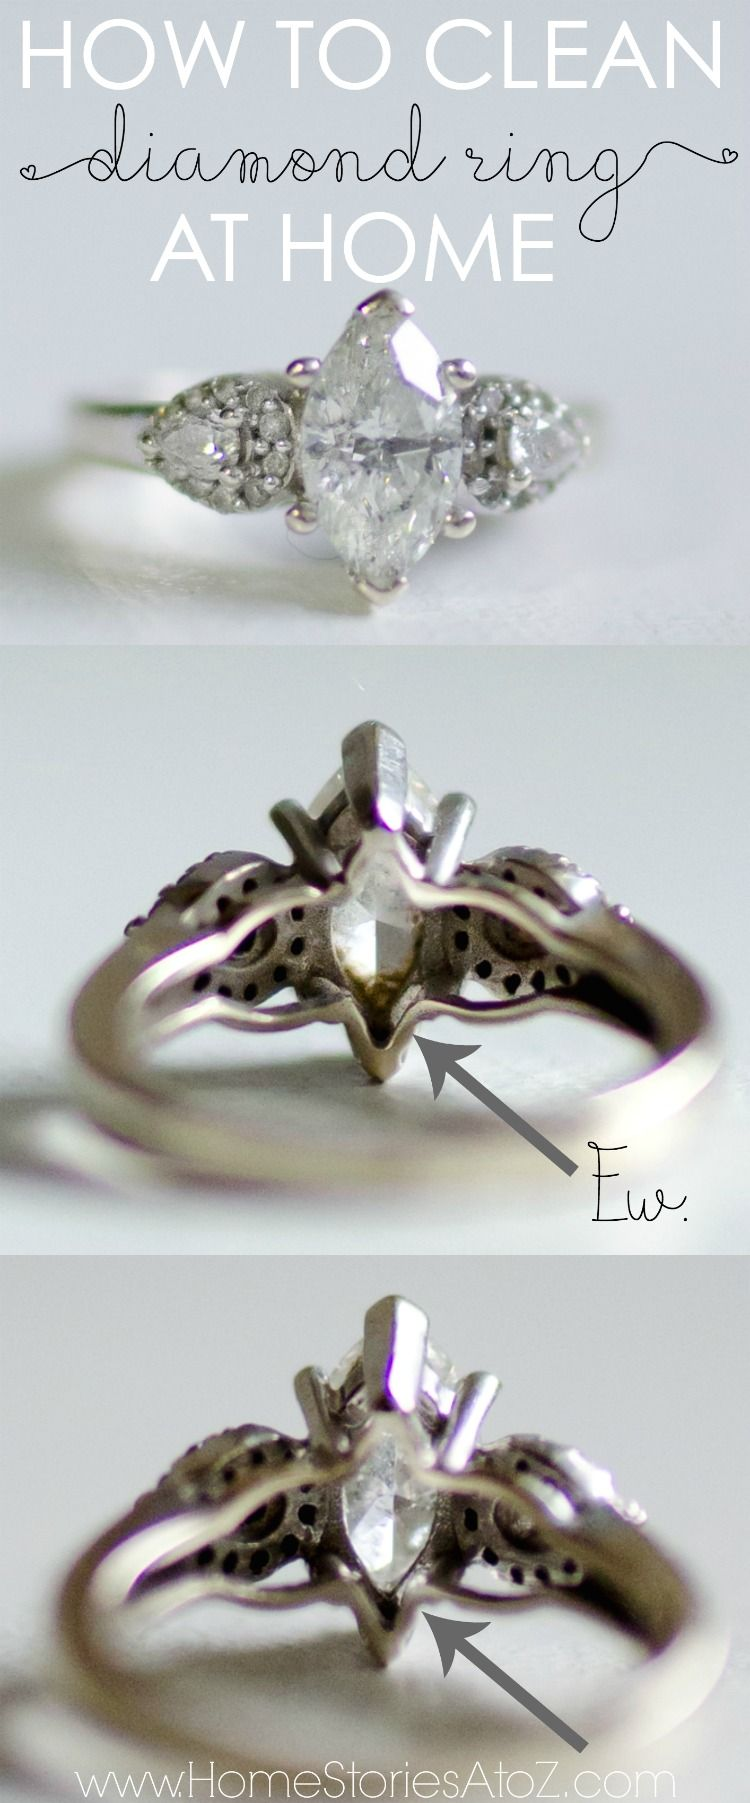 How to Clean a Diamond Ring at Home (With images